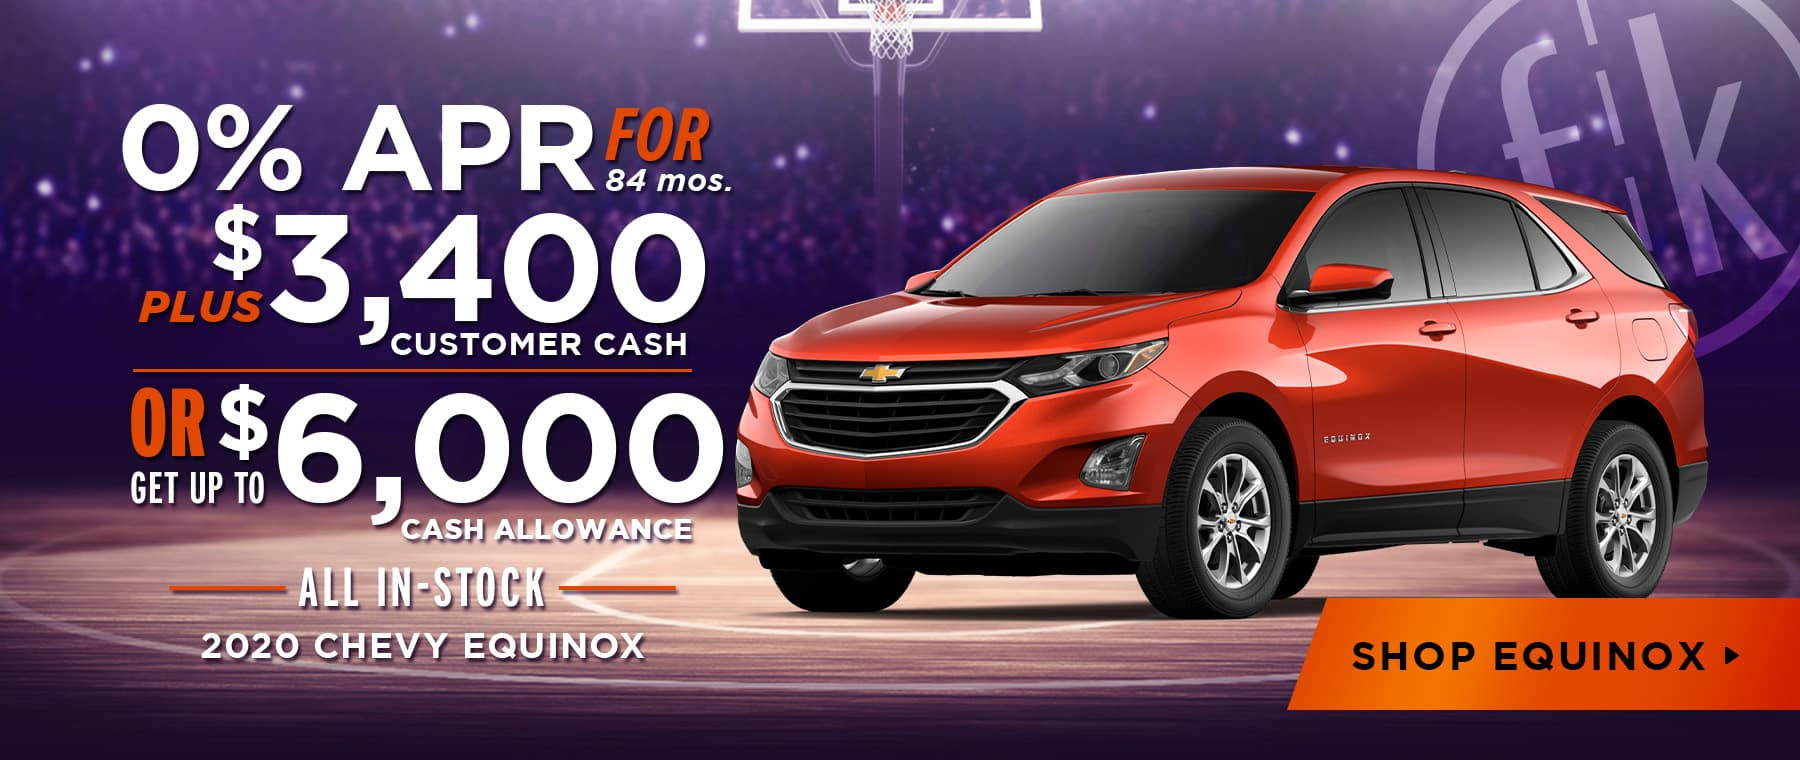 2020 Equinox 0% for 84 mos + $3,400 Customer Cash or Up To $6,000 Cash Allowance